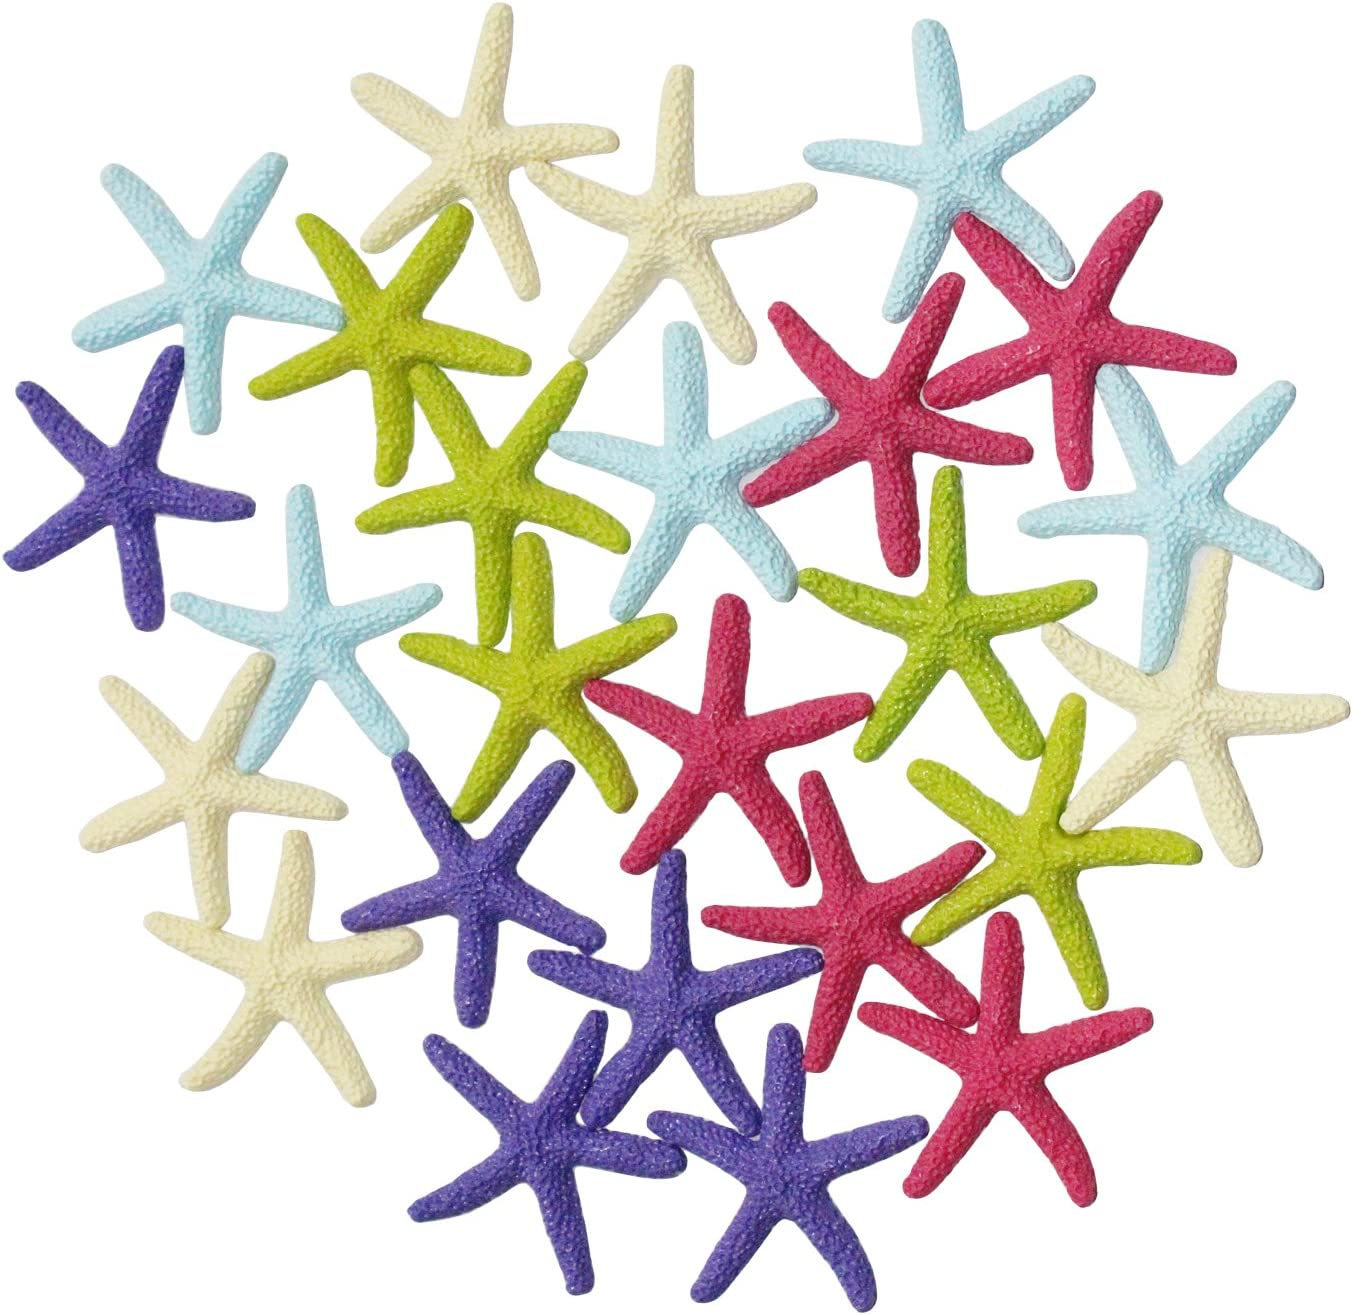 Ljy 25 Pieces Multi Colored Resin Pencil Finger Starfish For Wedding Decor Home Decor And Craft Project 2 3 Inches